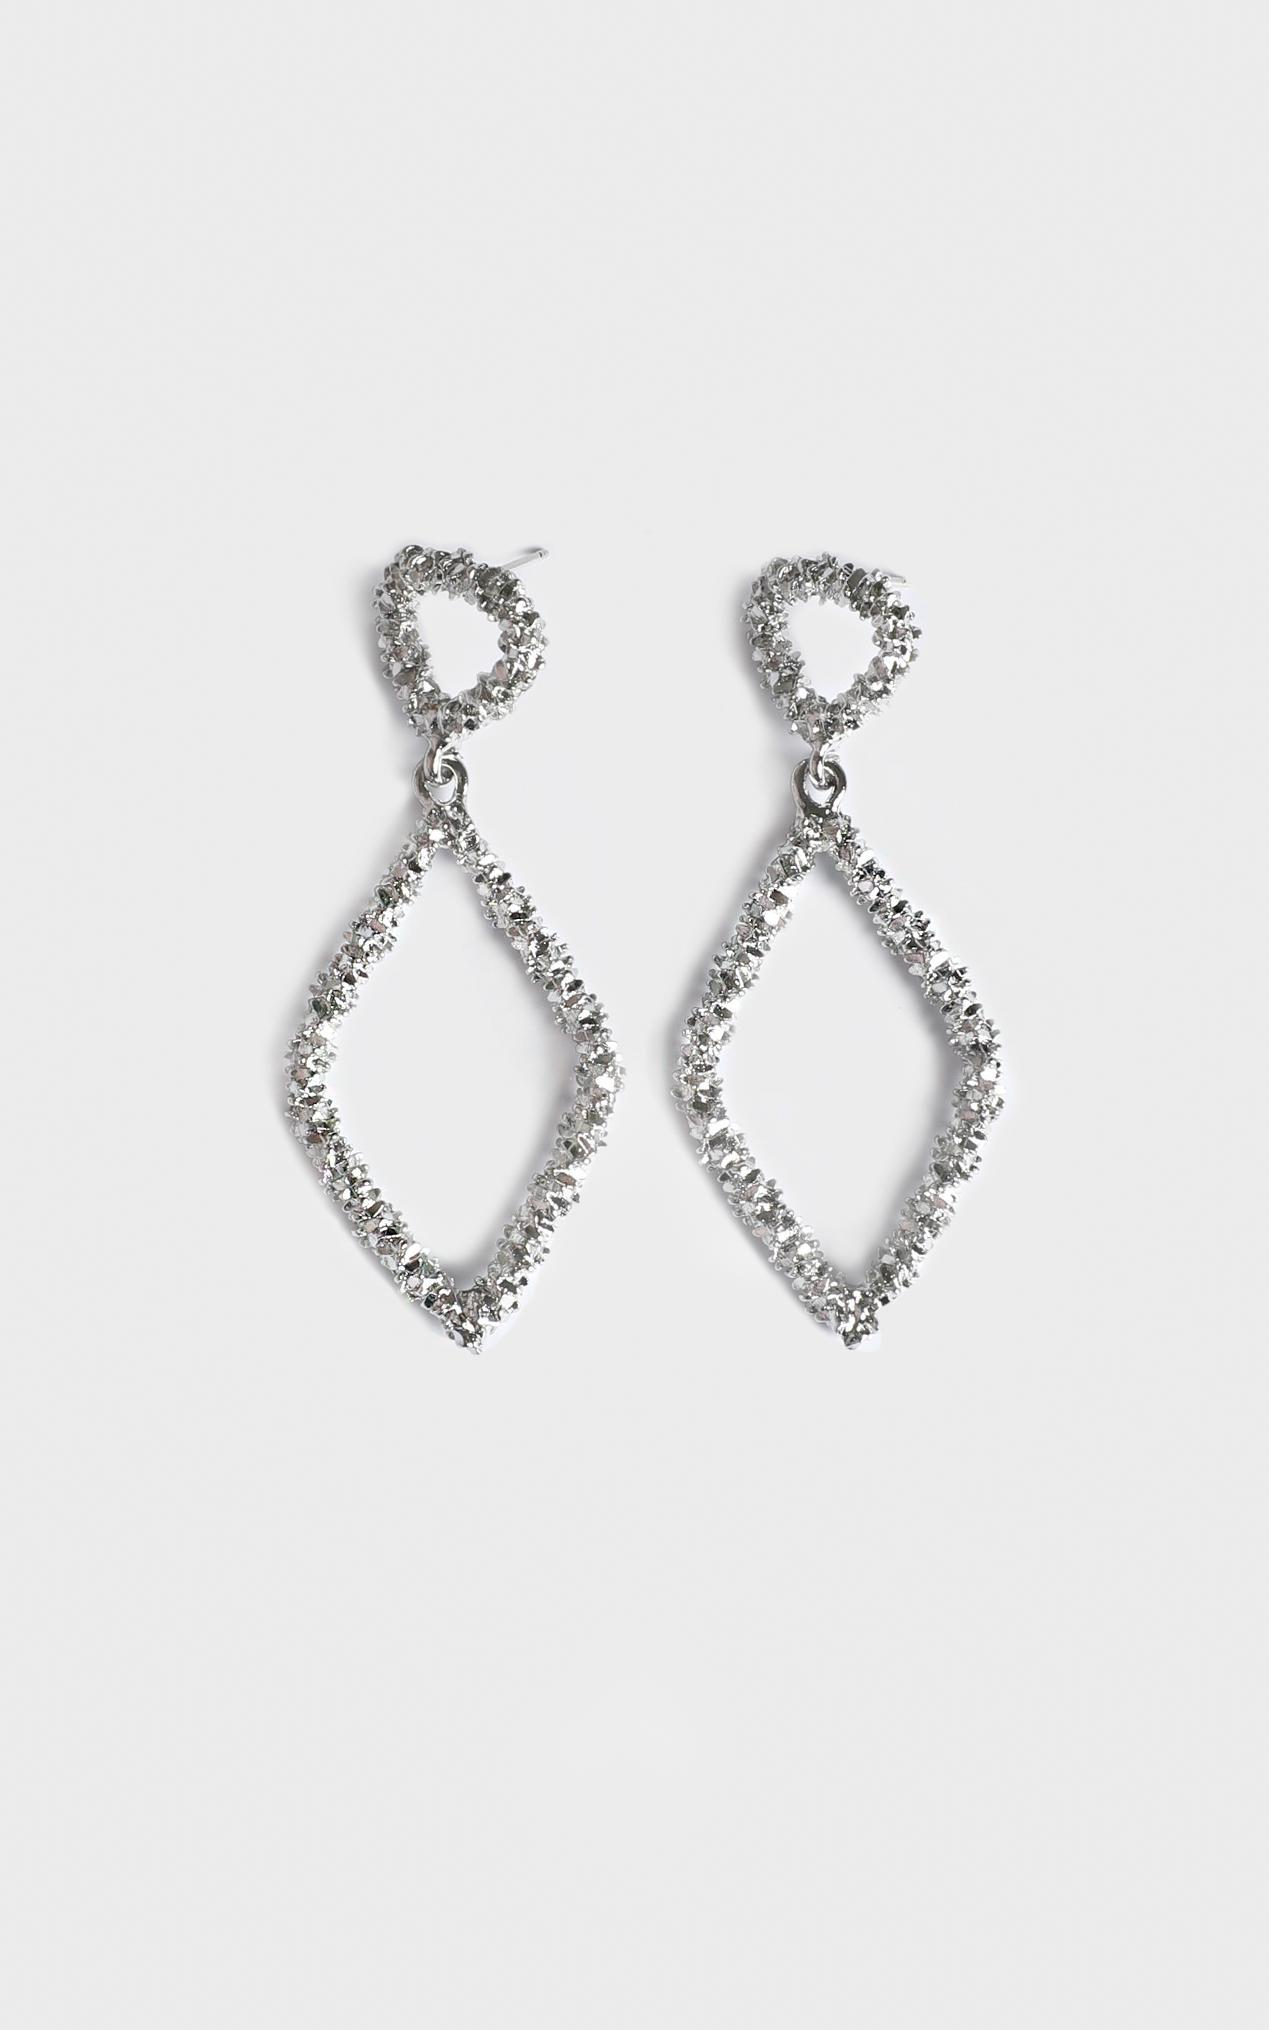 Disco Nights Sparkle Earrings In Silver, , hi-res image number null